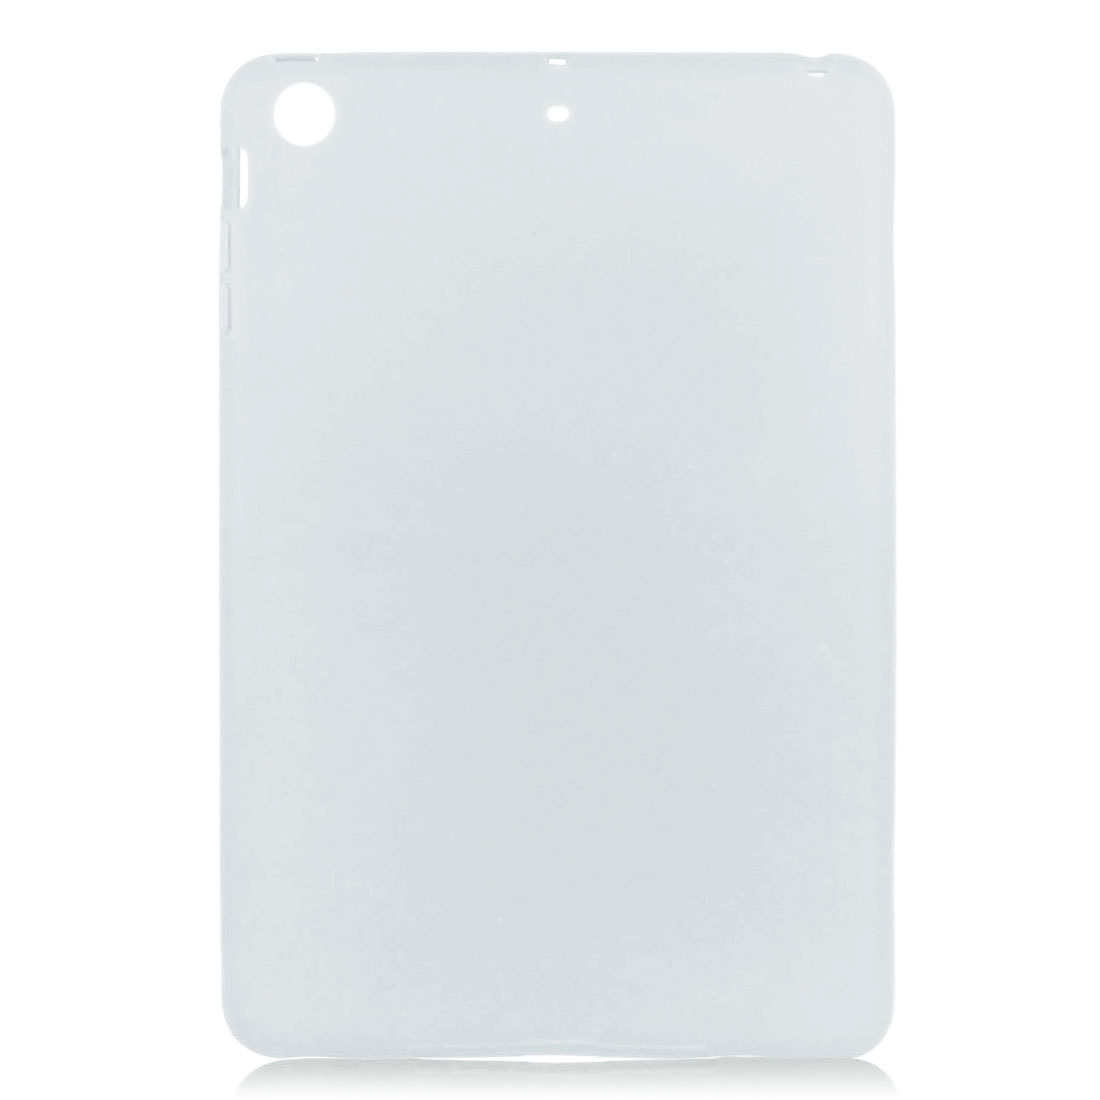 White Soft Silicone Skin Case Cover Protector for Apple iPad Mini